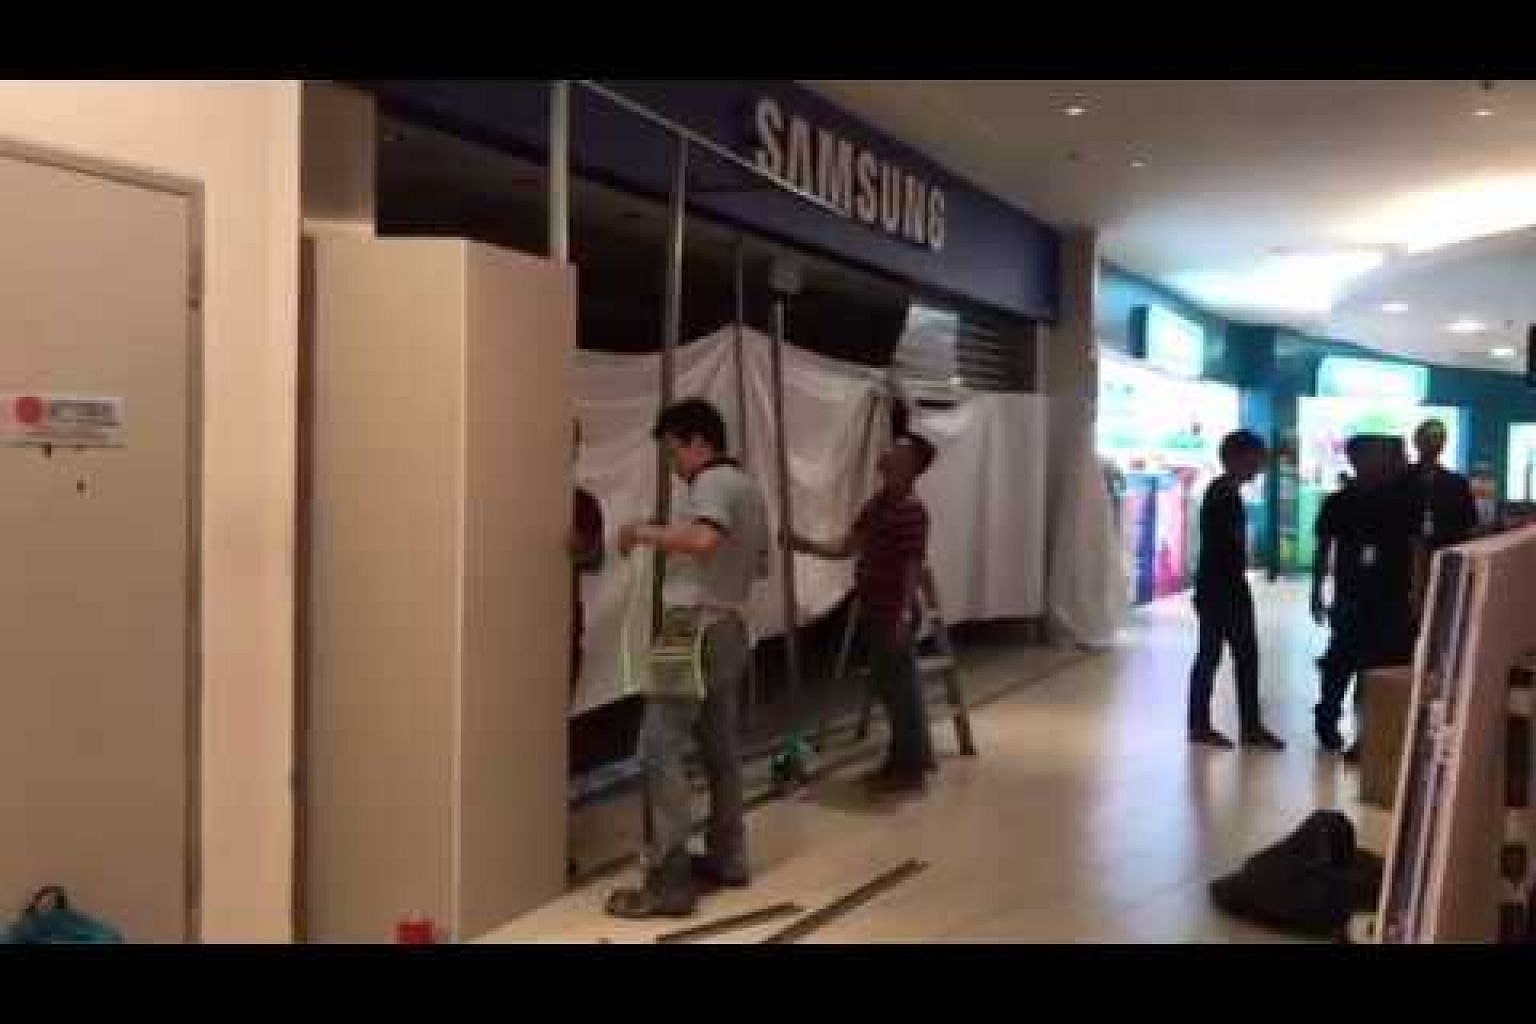 Workers cleaning up Samsung store at AMK Hub